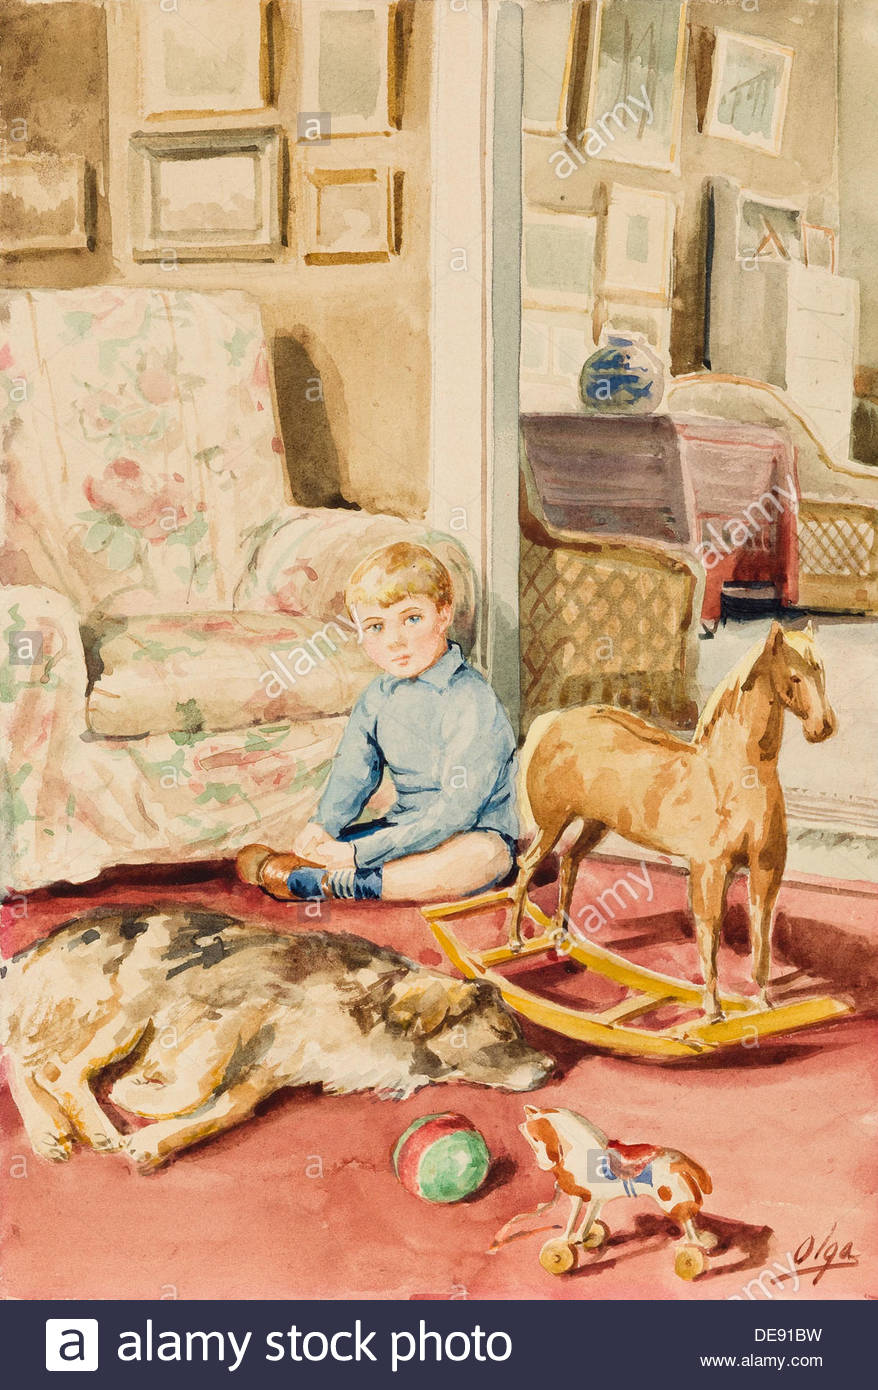 Portrait of the Artist's Son with a Dog and Toys, 1920s. Artist: Olga Alexandrovna of Russia, Grand Duchess - Stock Image